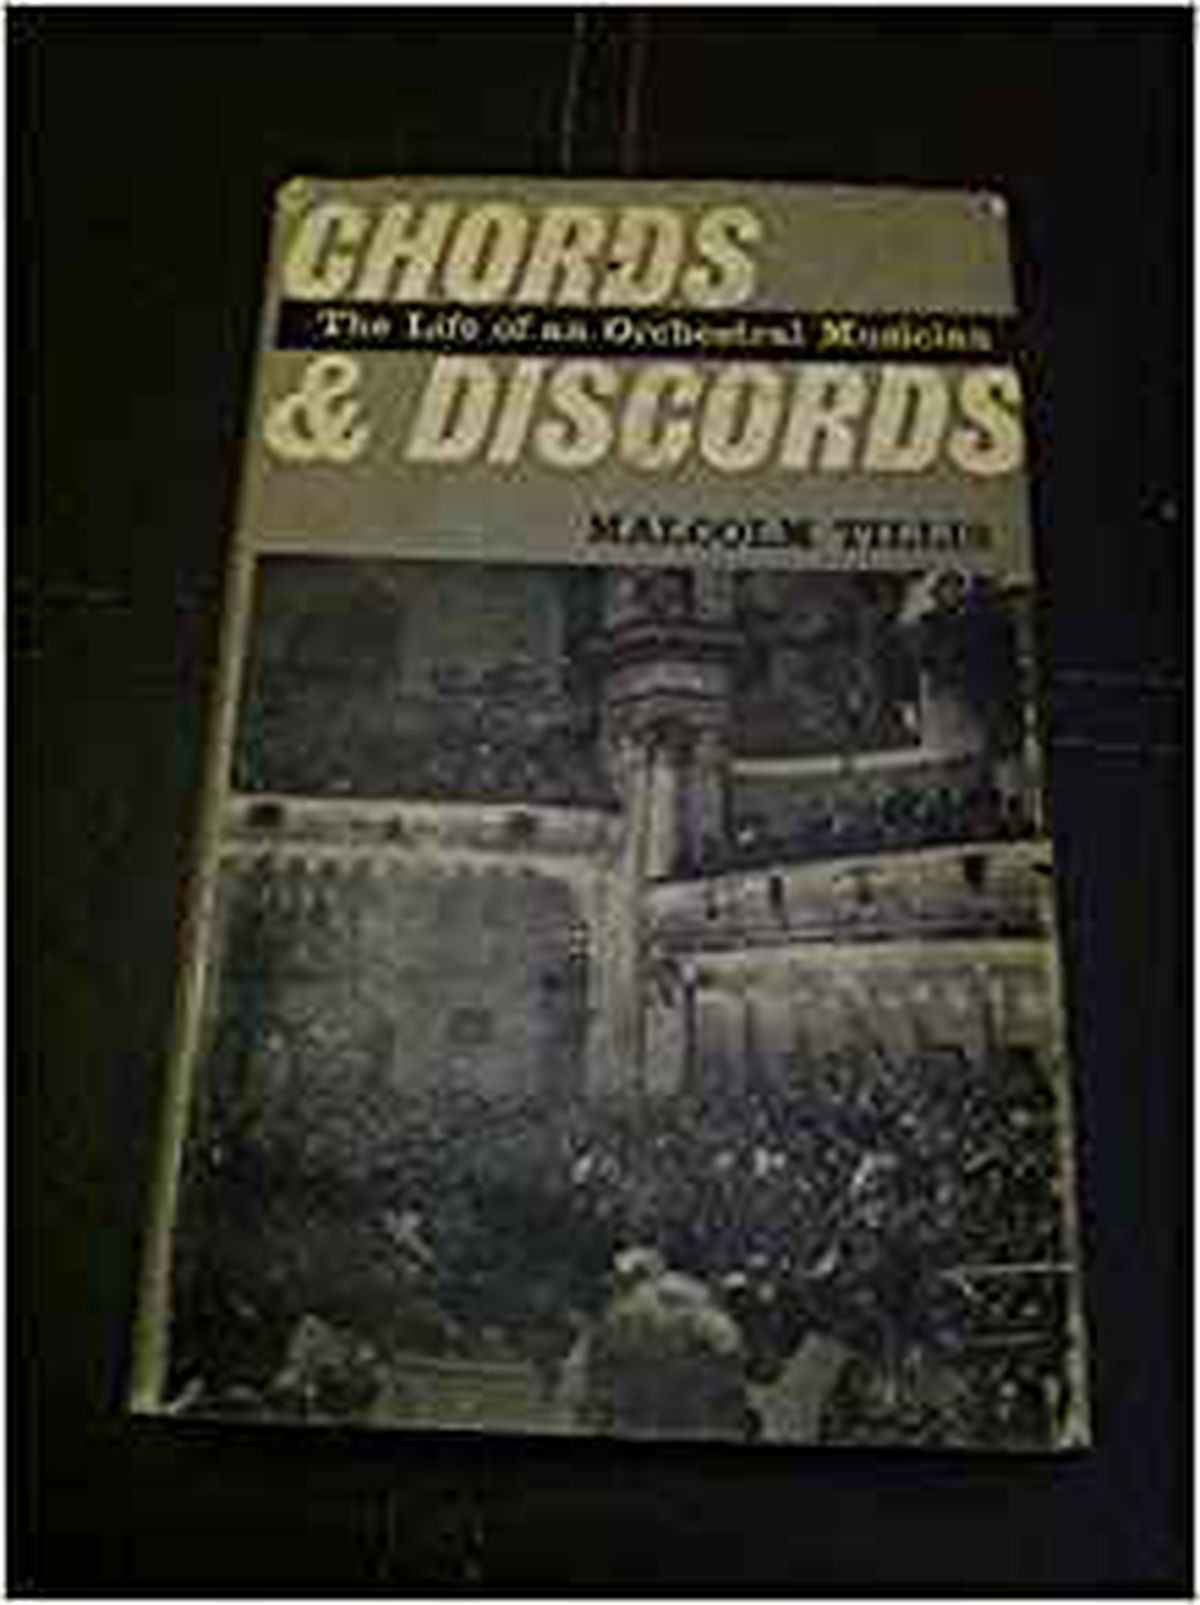 Malcolm's controversial book, Chords and Discords